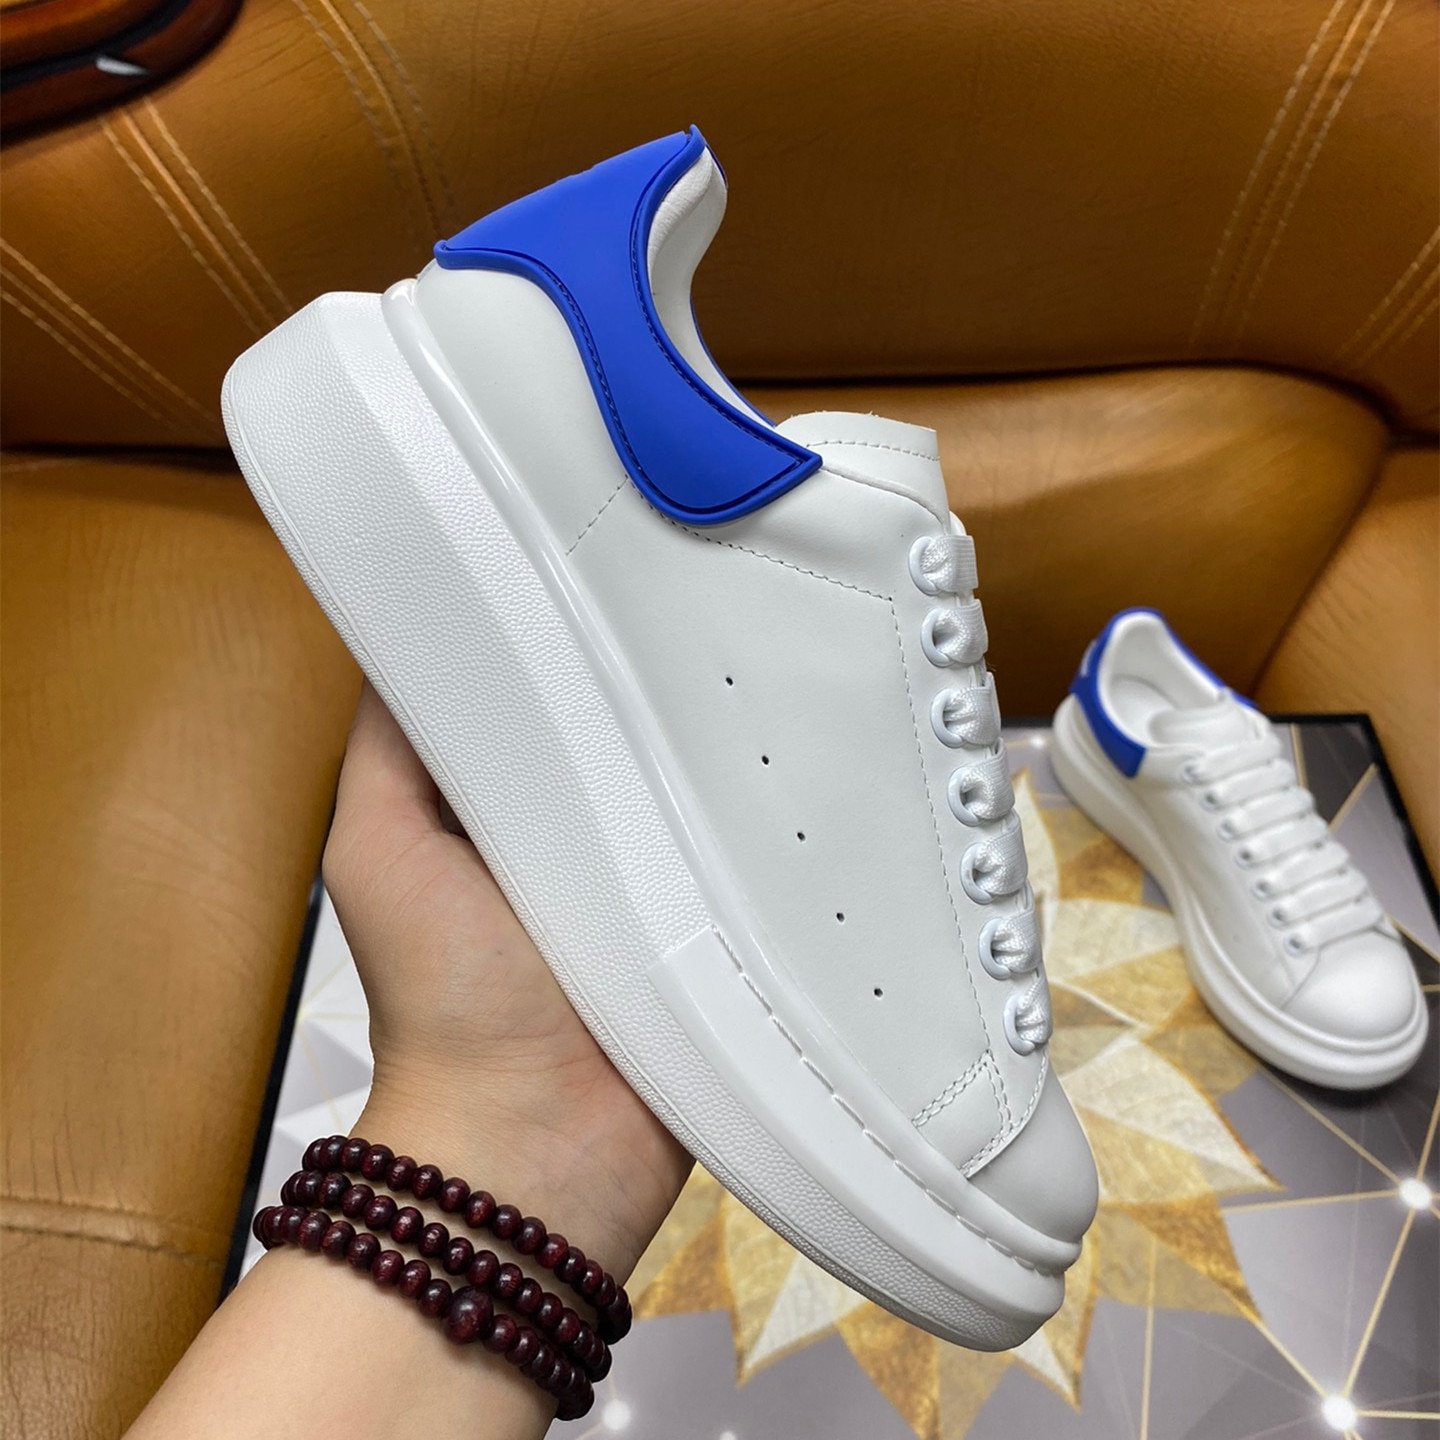 Women's casual fashion running shoes white outdoor walking men's sports shoes leather comfortable fans fashion sports shoes